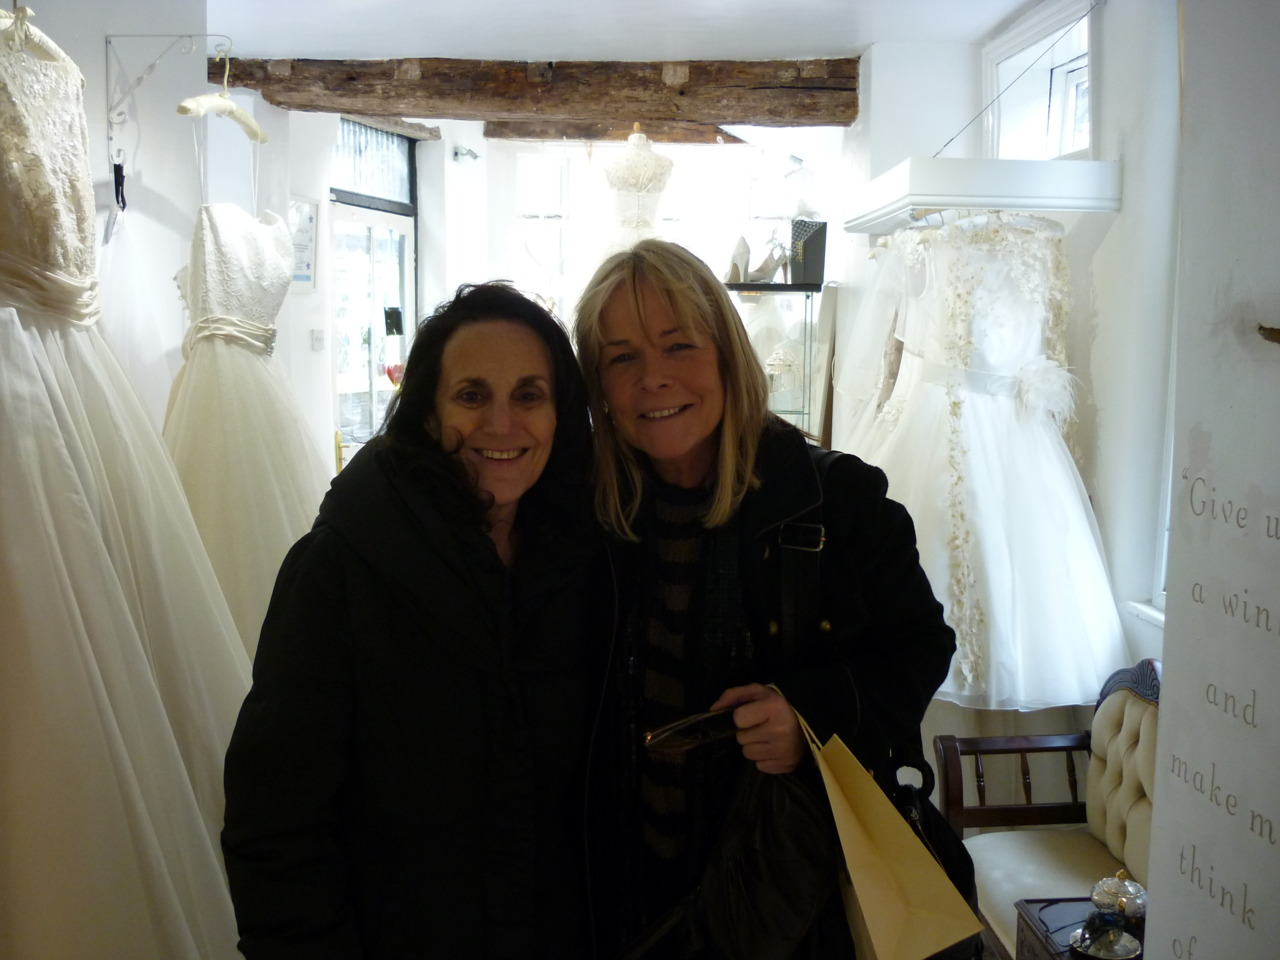 Celebrity visit to My little Wedding Shop!   Last week I was thrilled to receive a vist at My little Wedding Shop from Birds of A Feather stars Lesley Joseph and Linda Robson. They were absolutely lovely and were very taken with the boutique, taking the time to peruse the shop and Linda even purchased a pair of earrings from Big Little Things!   I was very excited and tried to act cool whilst they were in the shop but in the end I gave in to my excitement and asked them to pose for a photo, and here it is! Proof of my recent claim to fame!